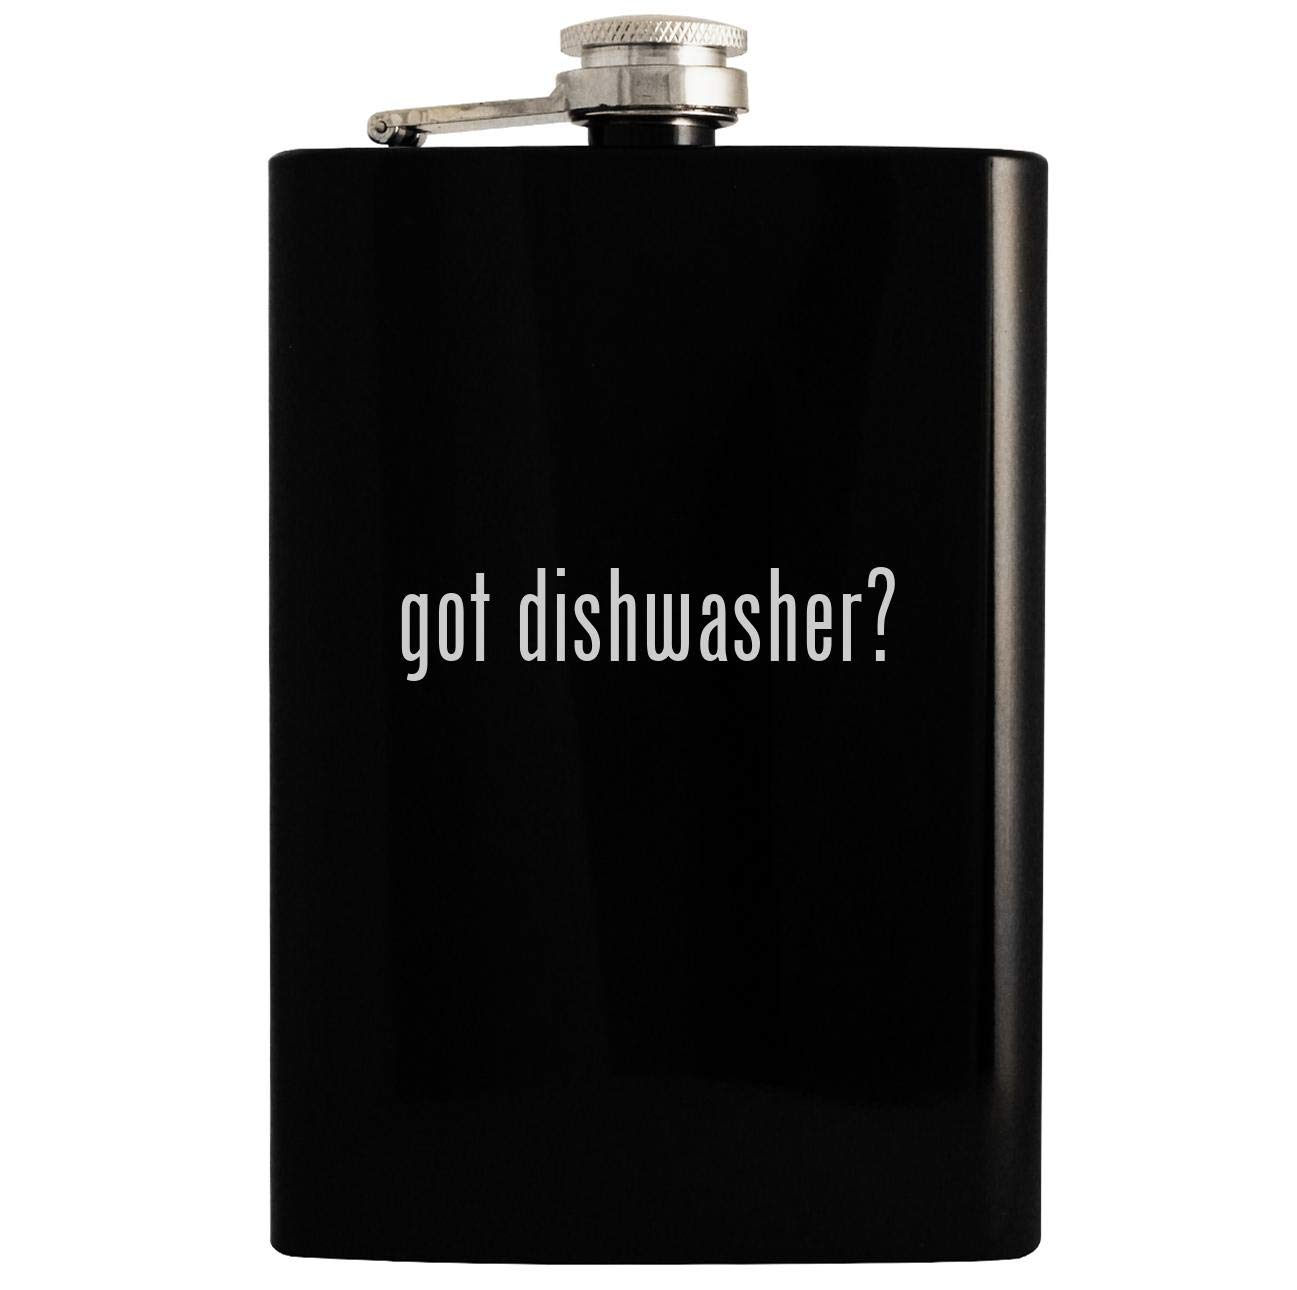 got dishwasher? - Black 8oz Hip Drinking Alcohol Flask